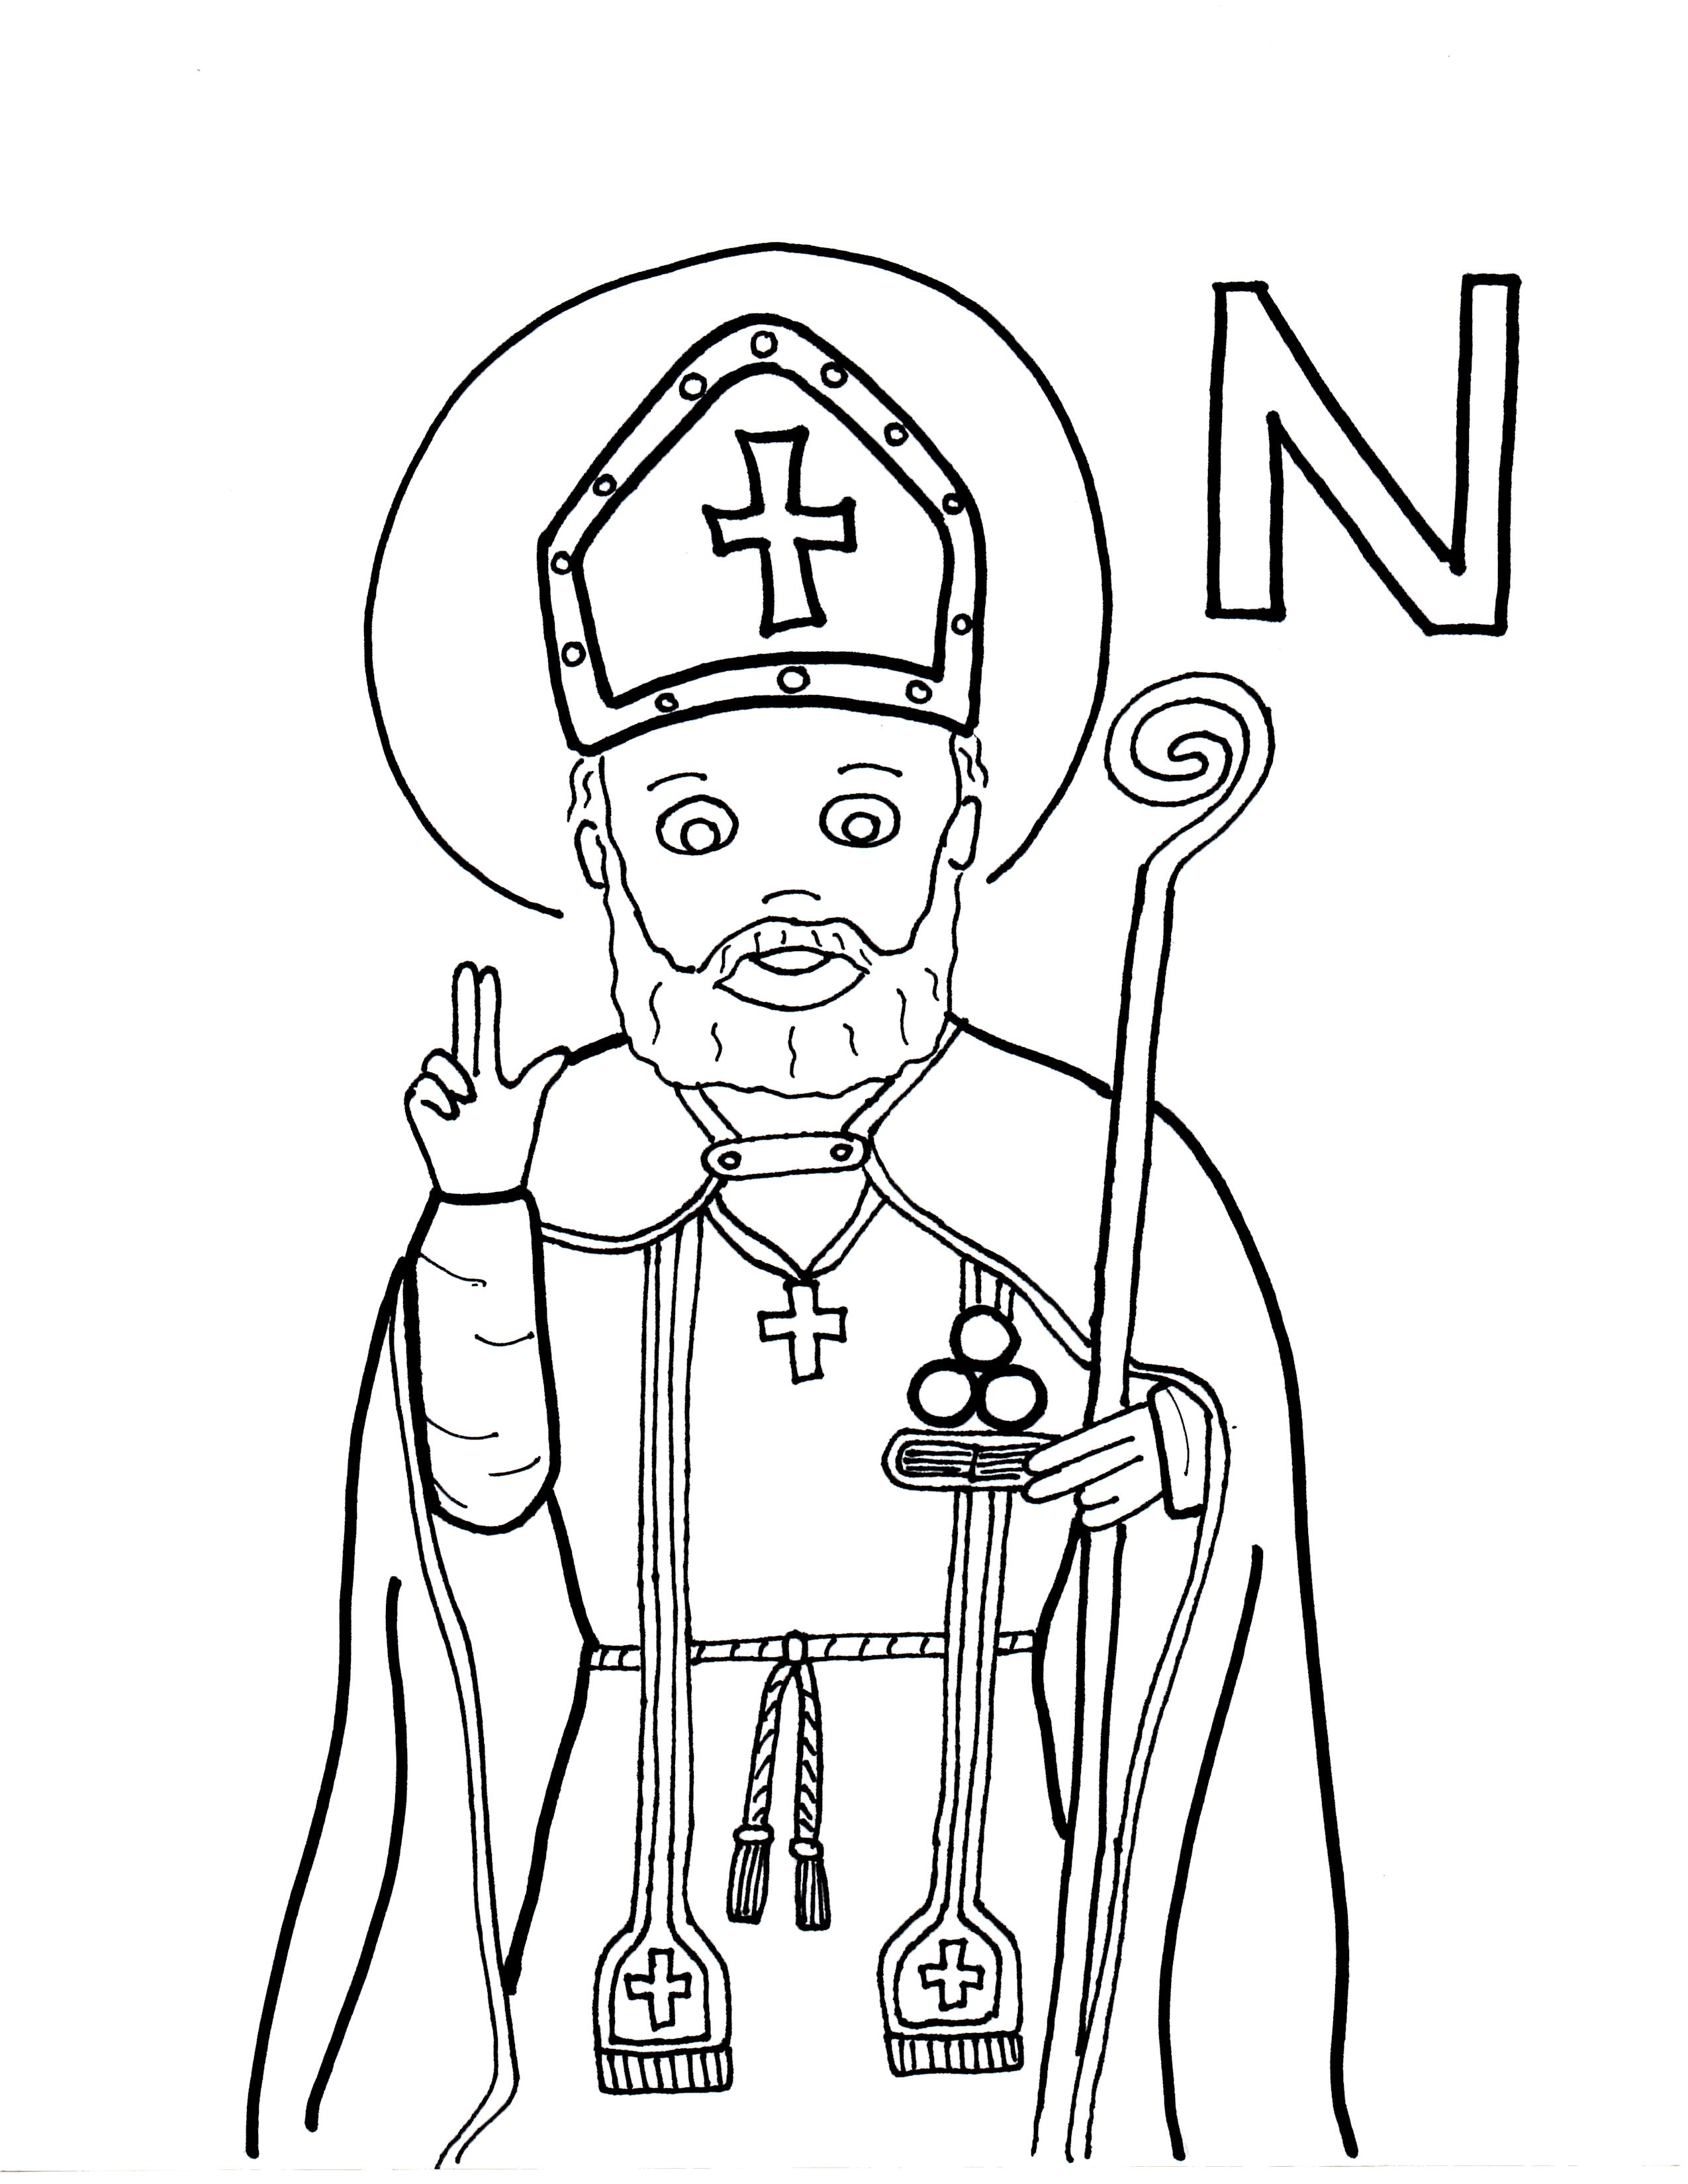 St nicholas coloring pages coloring home for Saint dominic savio coloring page